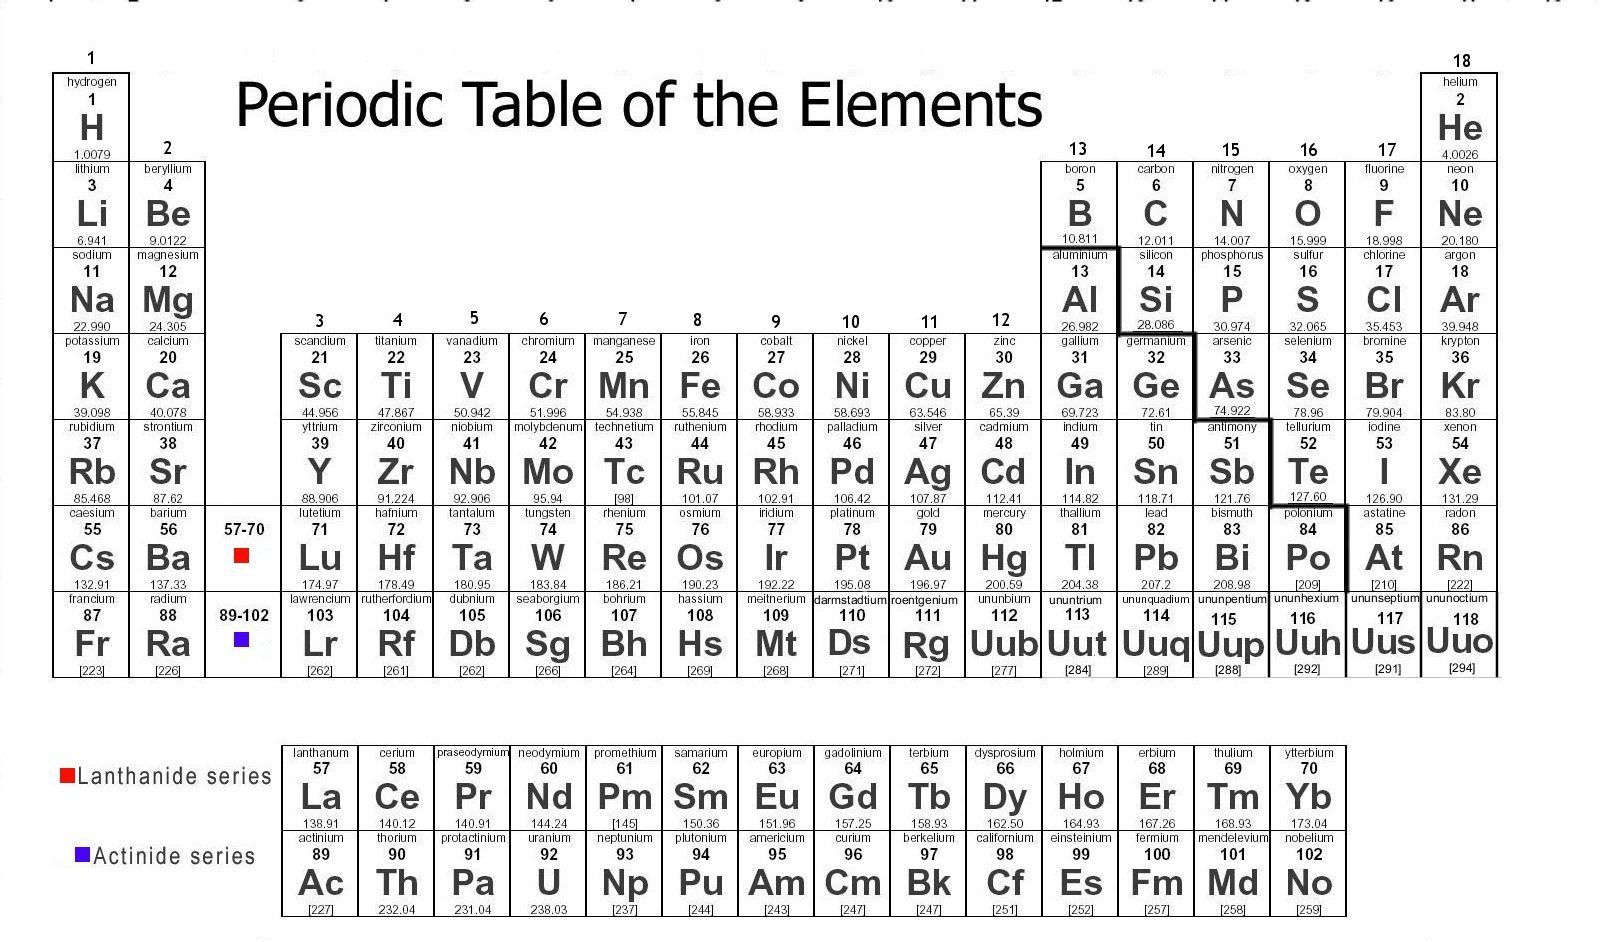 Periodic table of elements with everything periodic table of elements with everything msps09stheperiodictablepopupg gamestrikefo Image collections